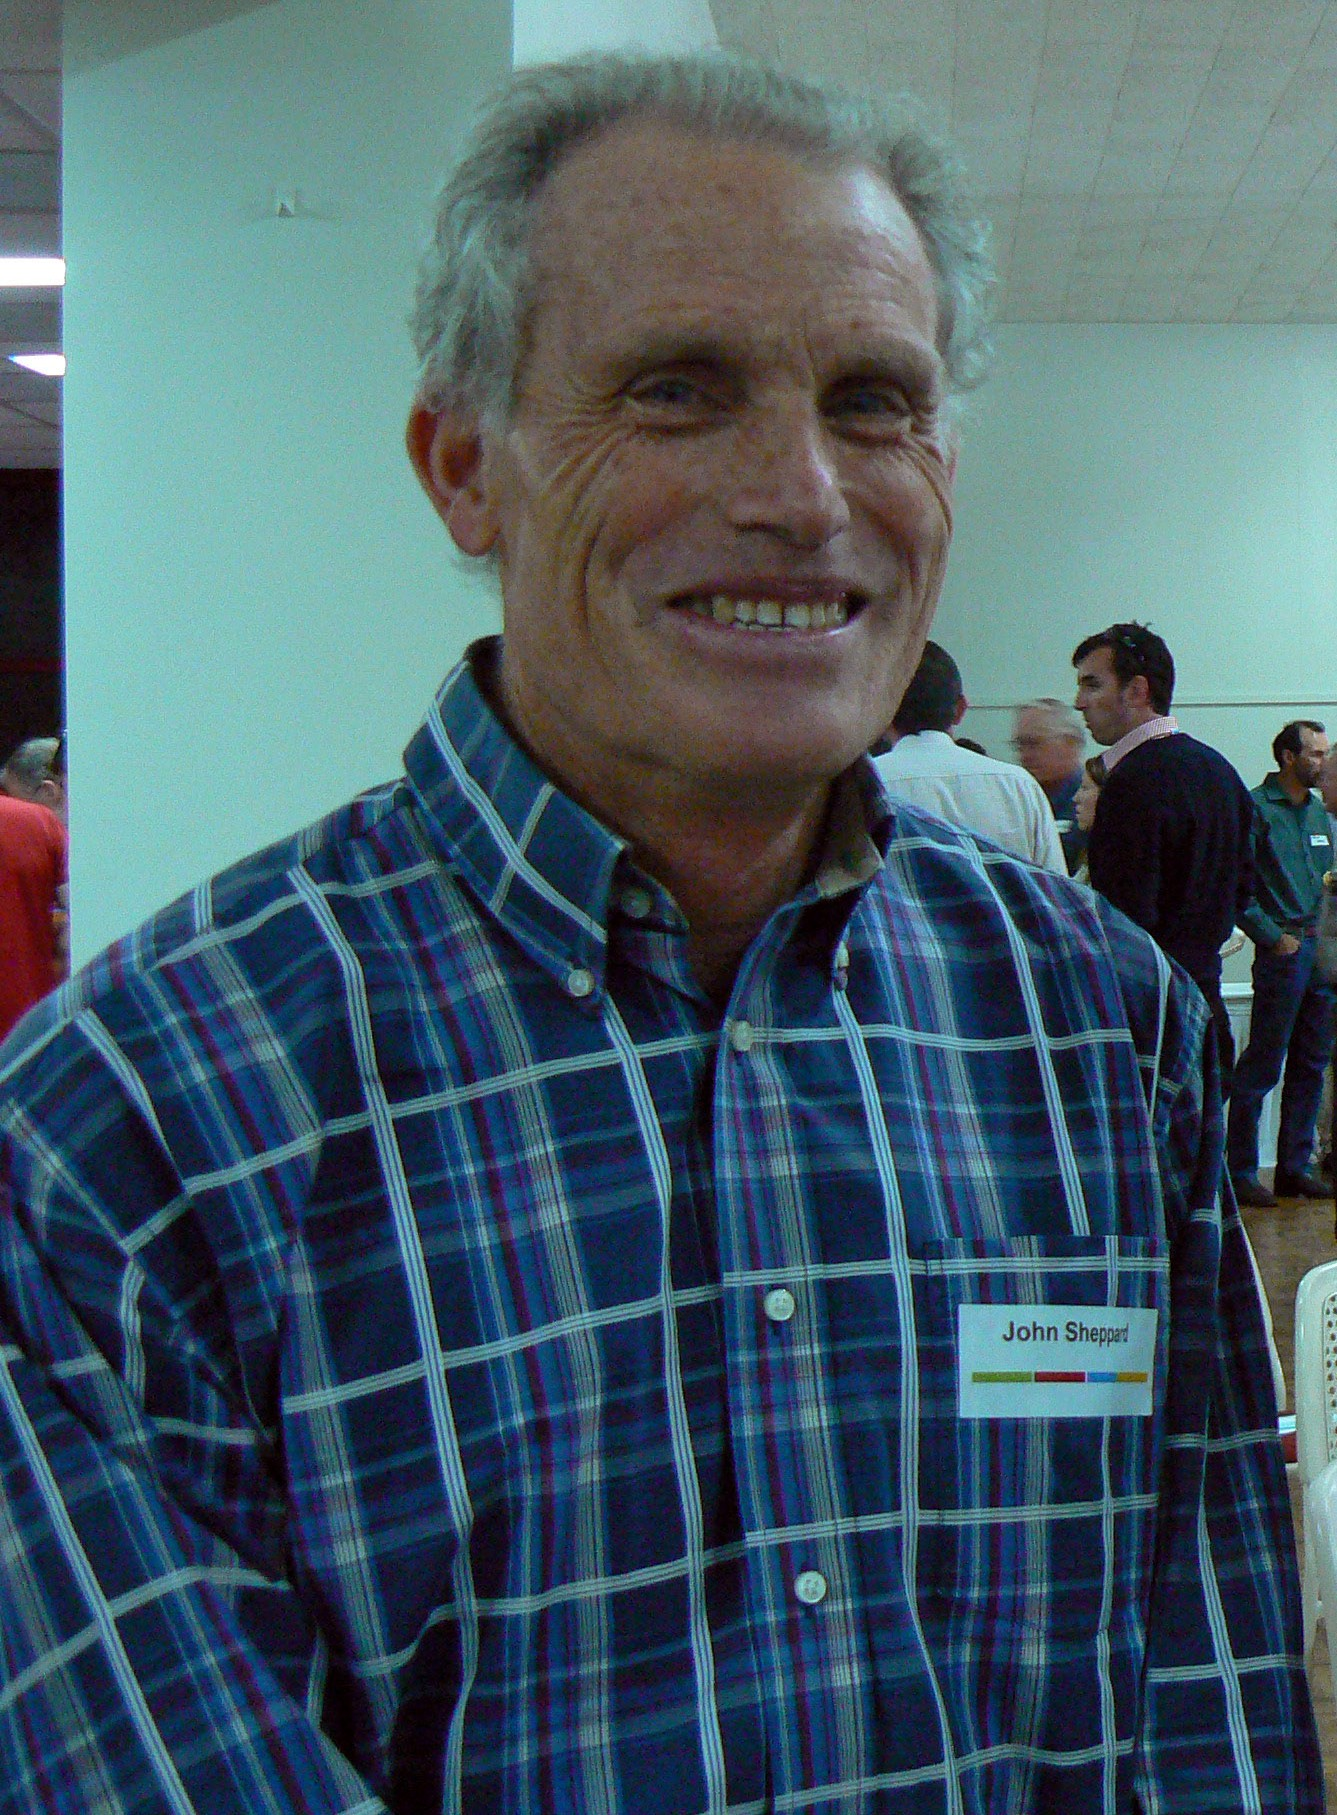 Image of John Sheppard, GRDC Northern Panel member.